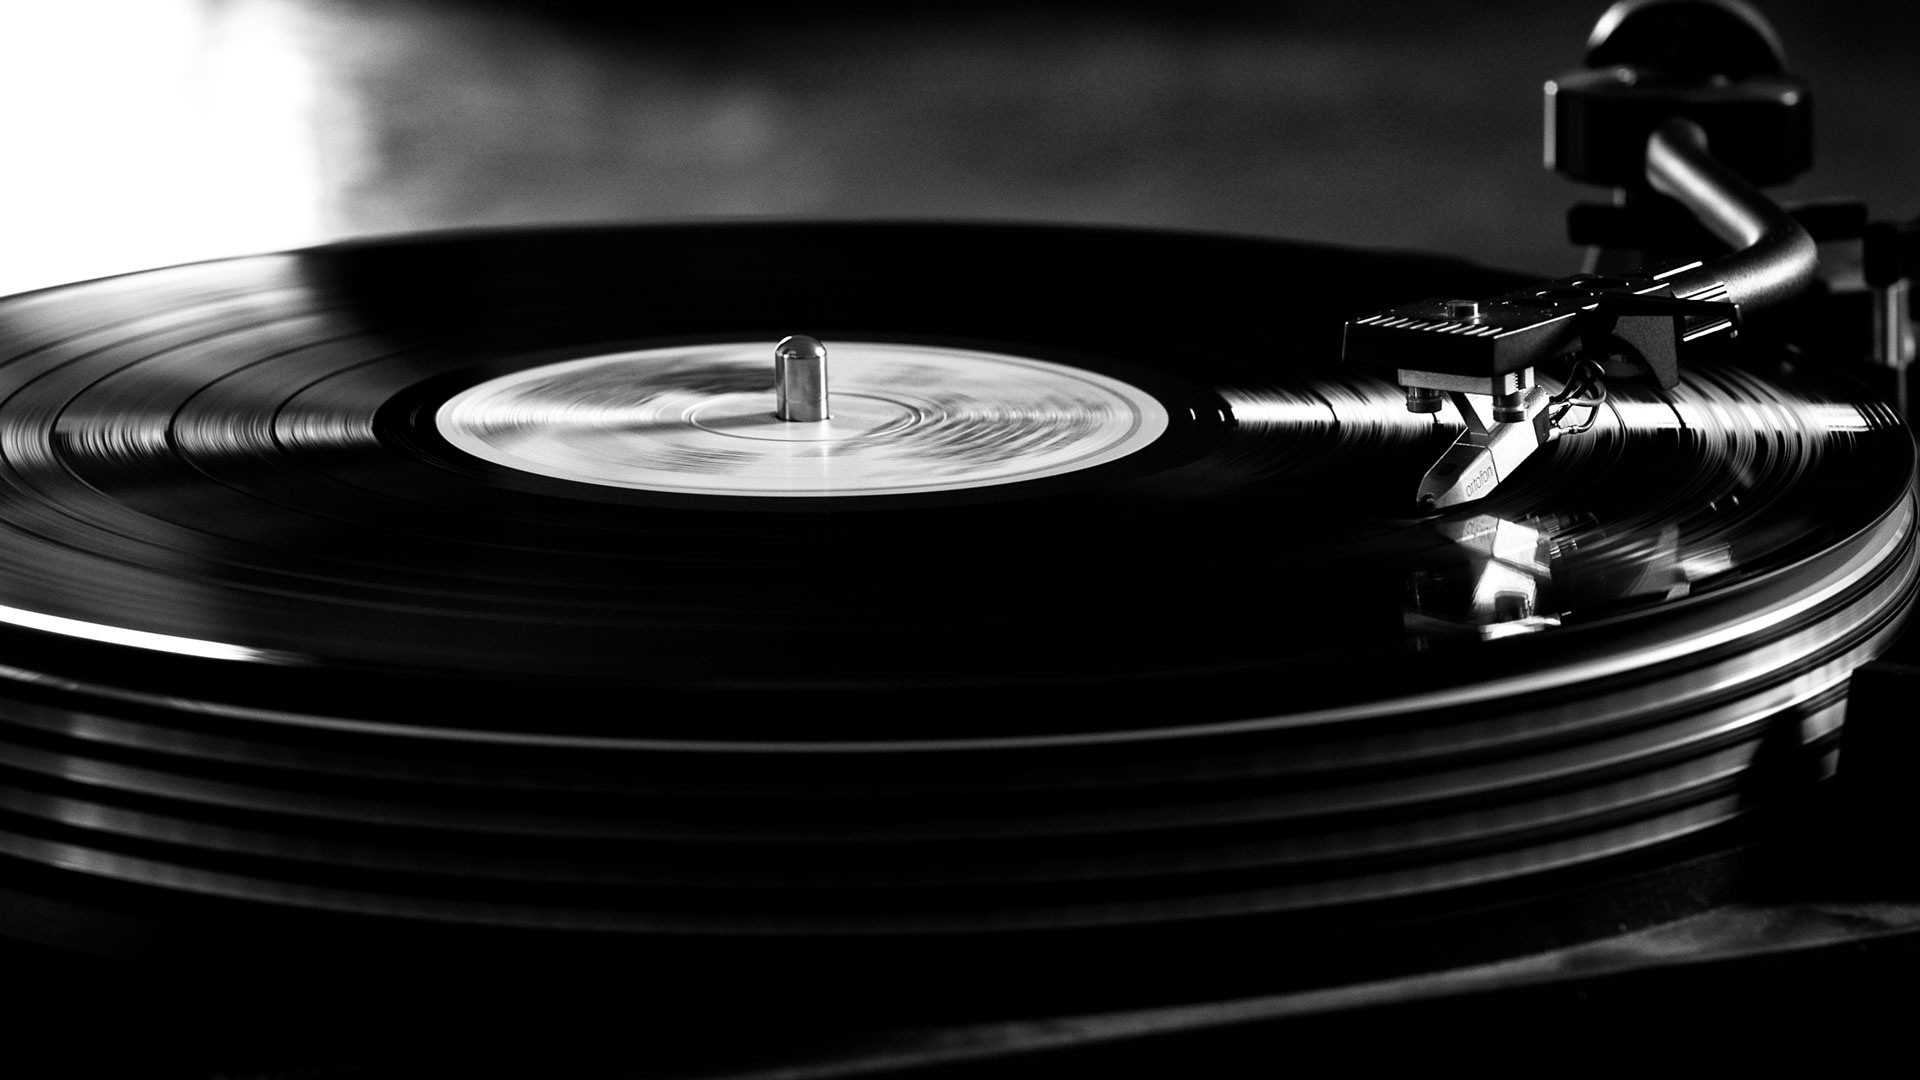 Vintage Vinyl Record Player Wallpaper - HD Wallpapers